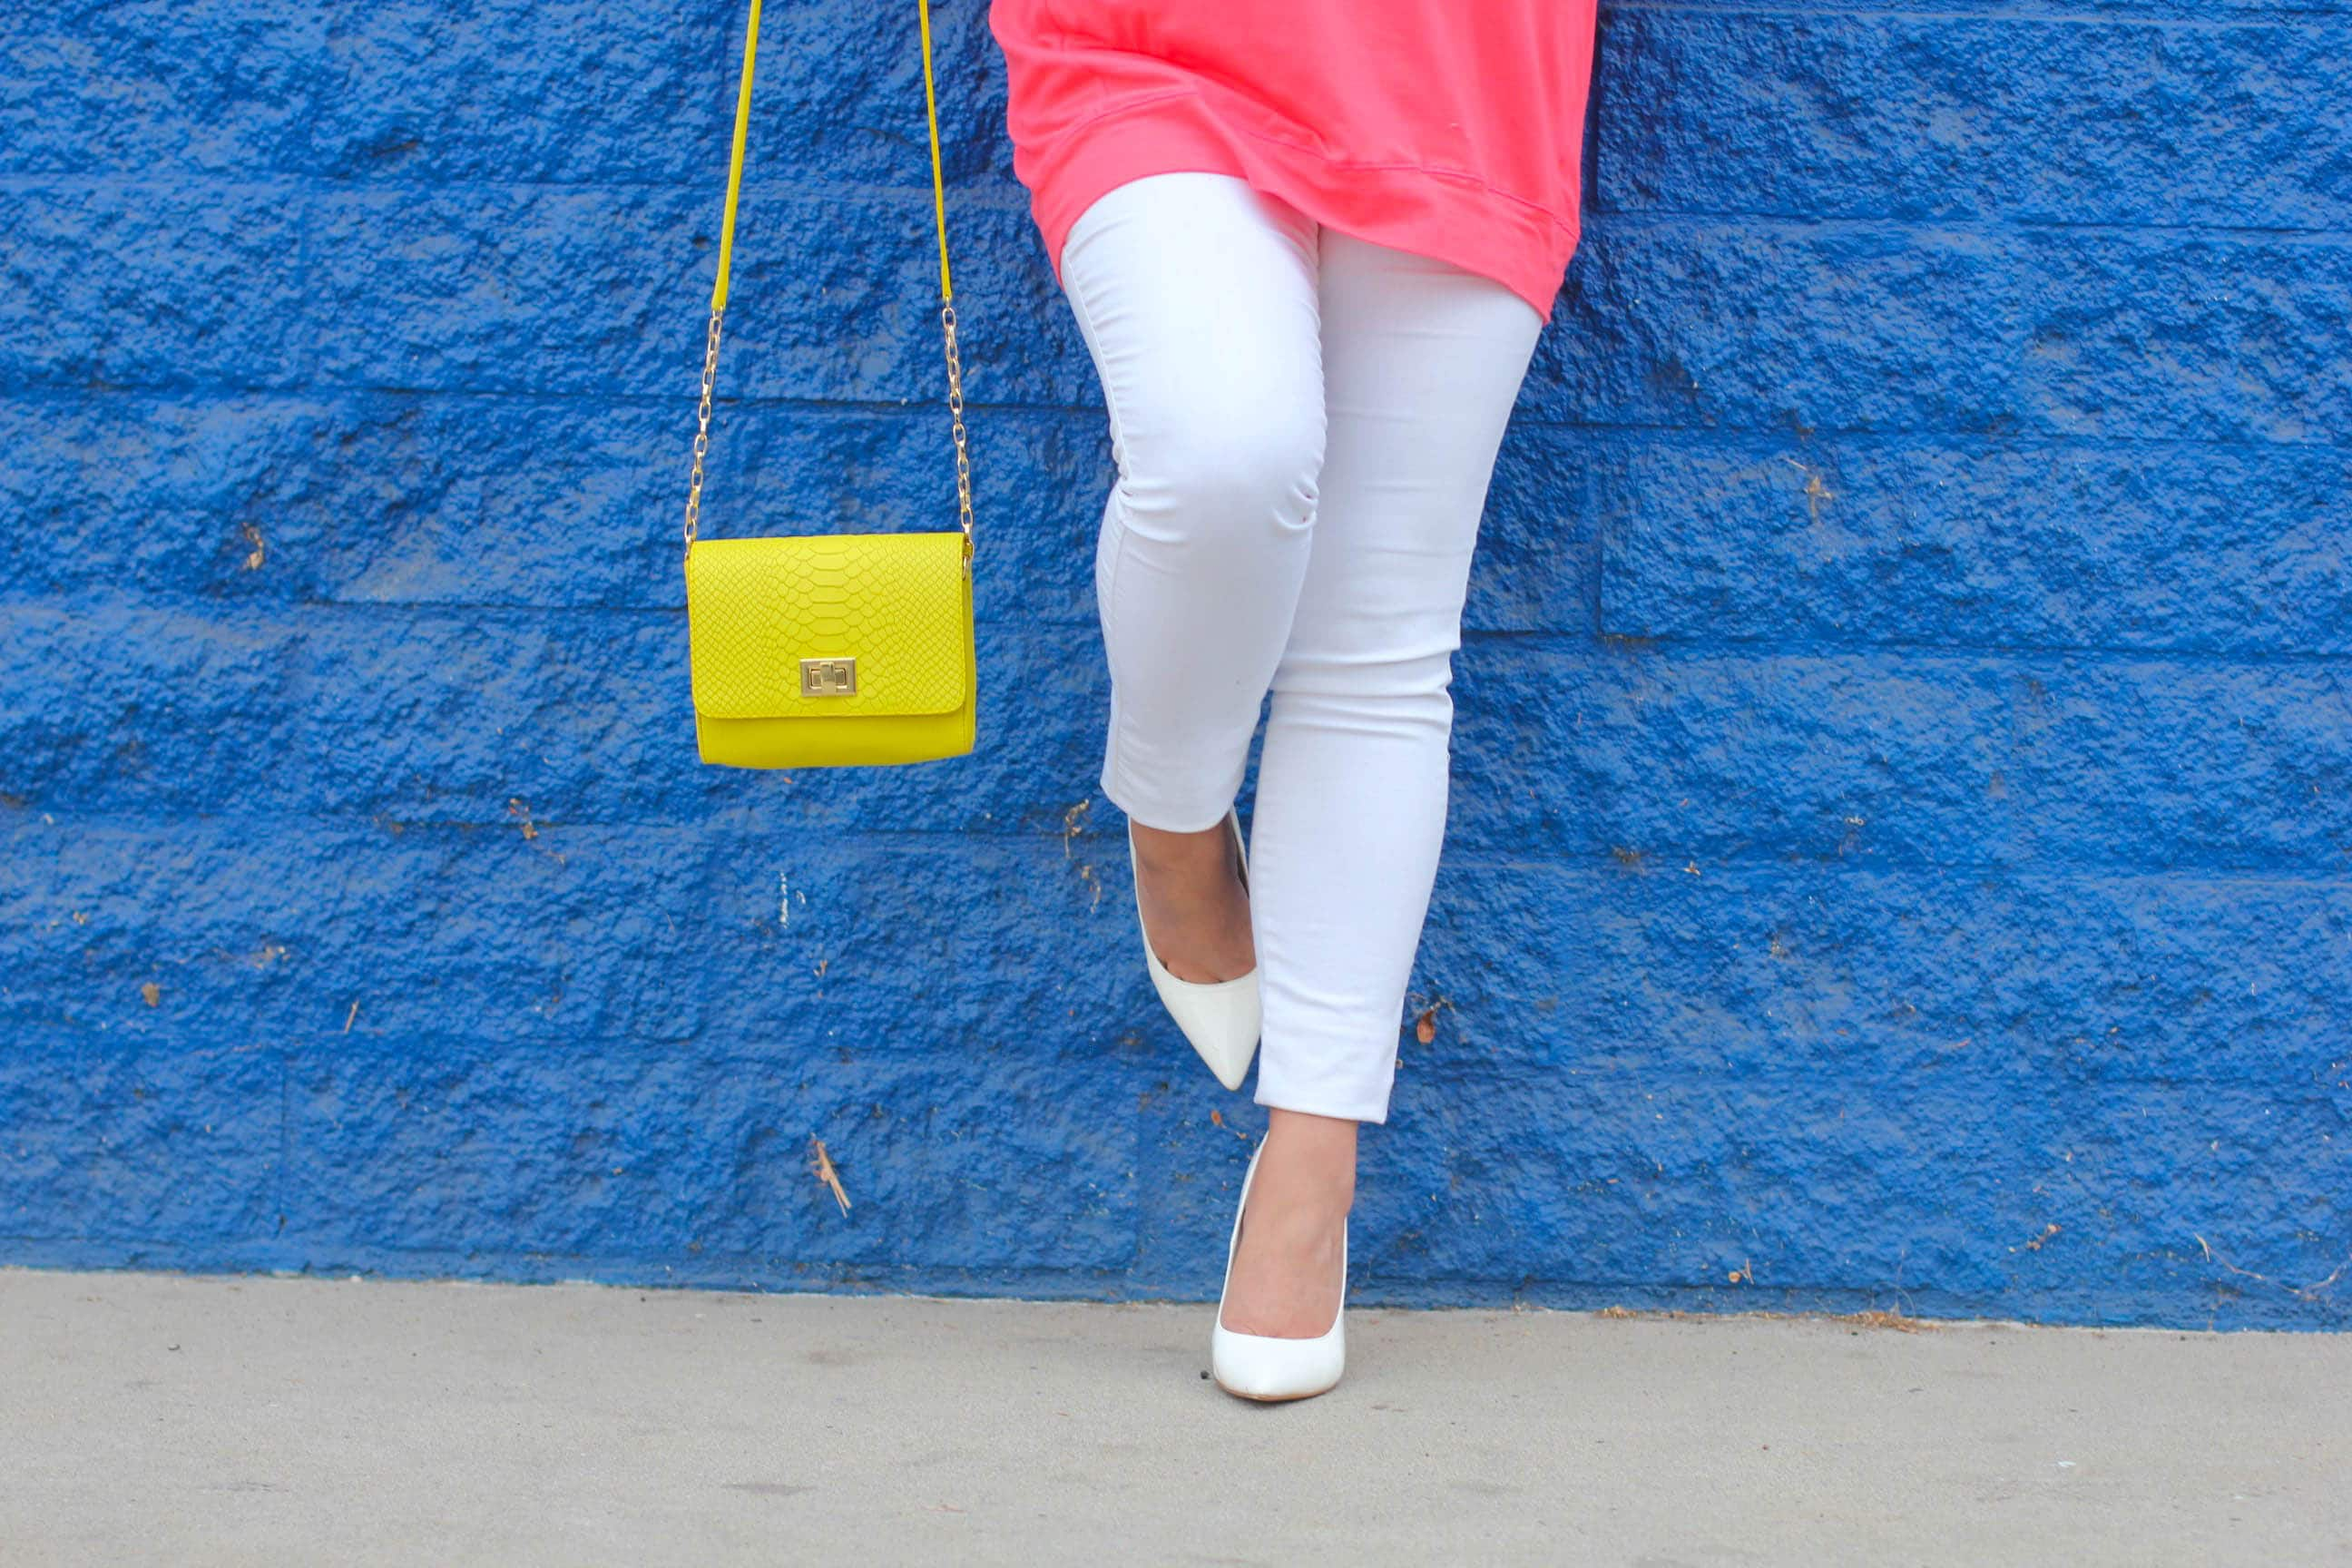 missyonmadison, melissa tierney, missyonmadison instagram, fashion blogger, style blogger, style blog, street style, pop of color, old navy rockstar jeans, old navy, old navy white skinny jeans, white skinny jeans, white pumps, white pointed toe pumps, gigi new york, gigi ny, gigi new york yellow crossbody bag, gigi ny bag, gigi ny corssbody, silver sunglasses, choies, pink tunic, pink long sleeve top, pink long sleeve tunic, la blogger, la style, wall crawl, wall traveled, la walls,